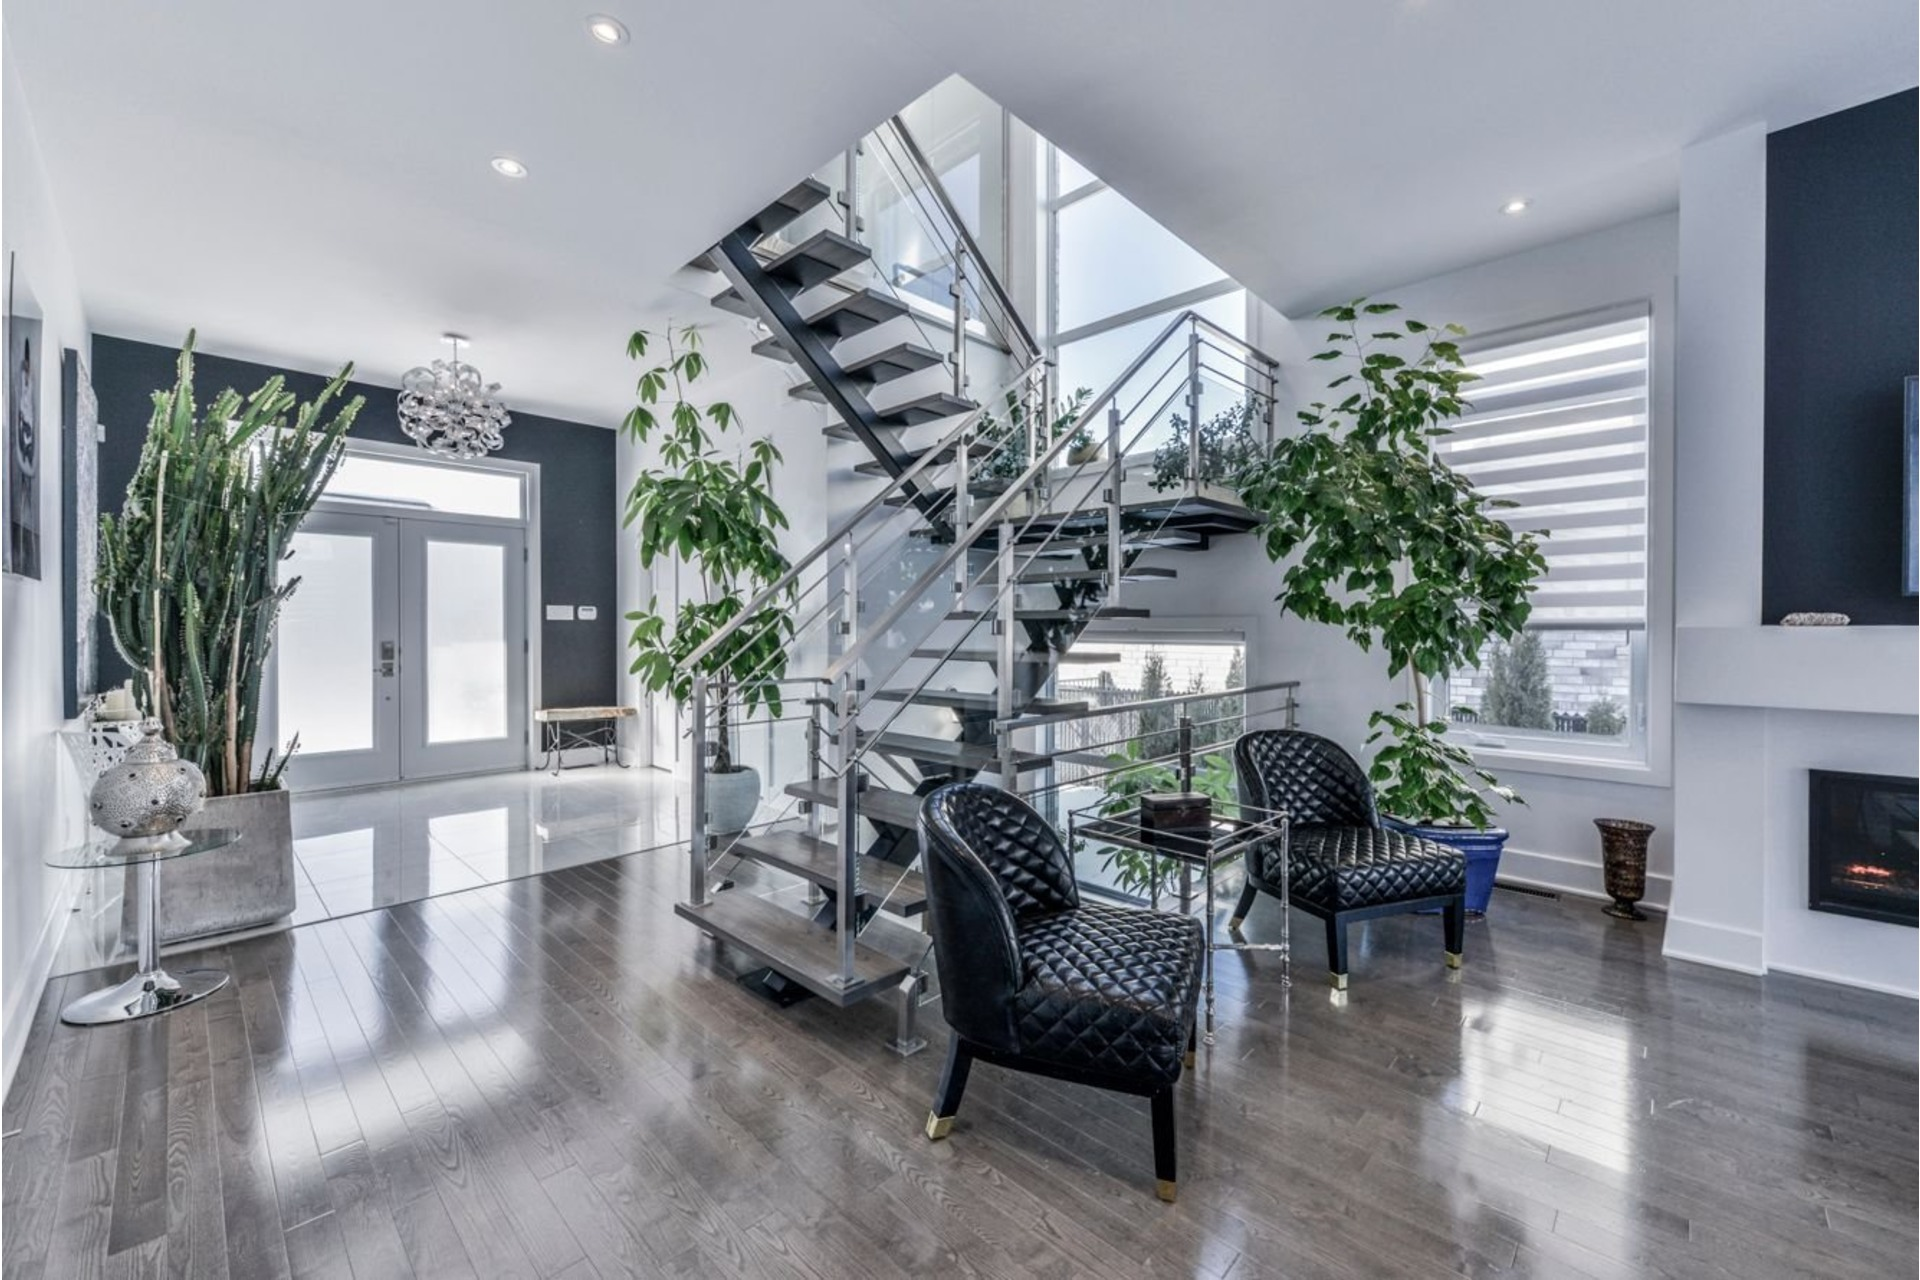 image 6 - House For sale Brossard - 7 rooms